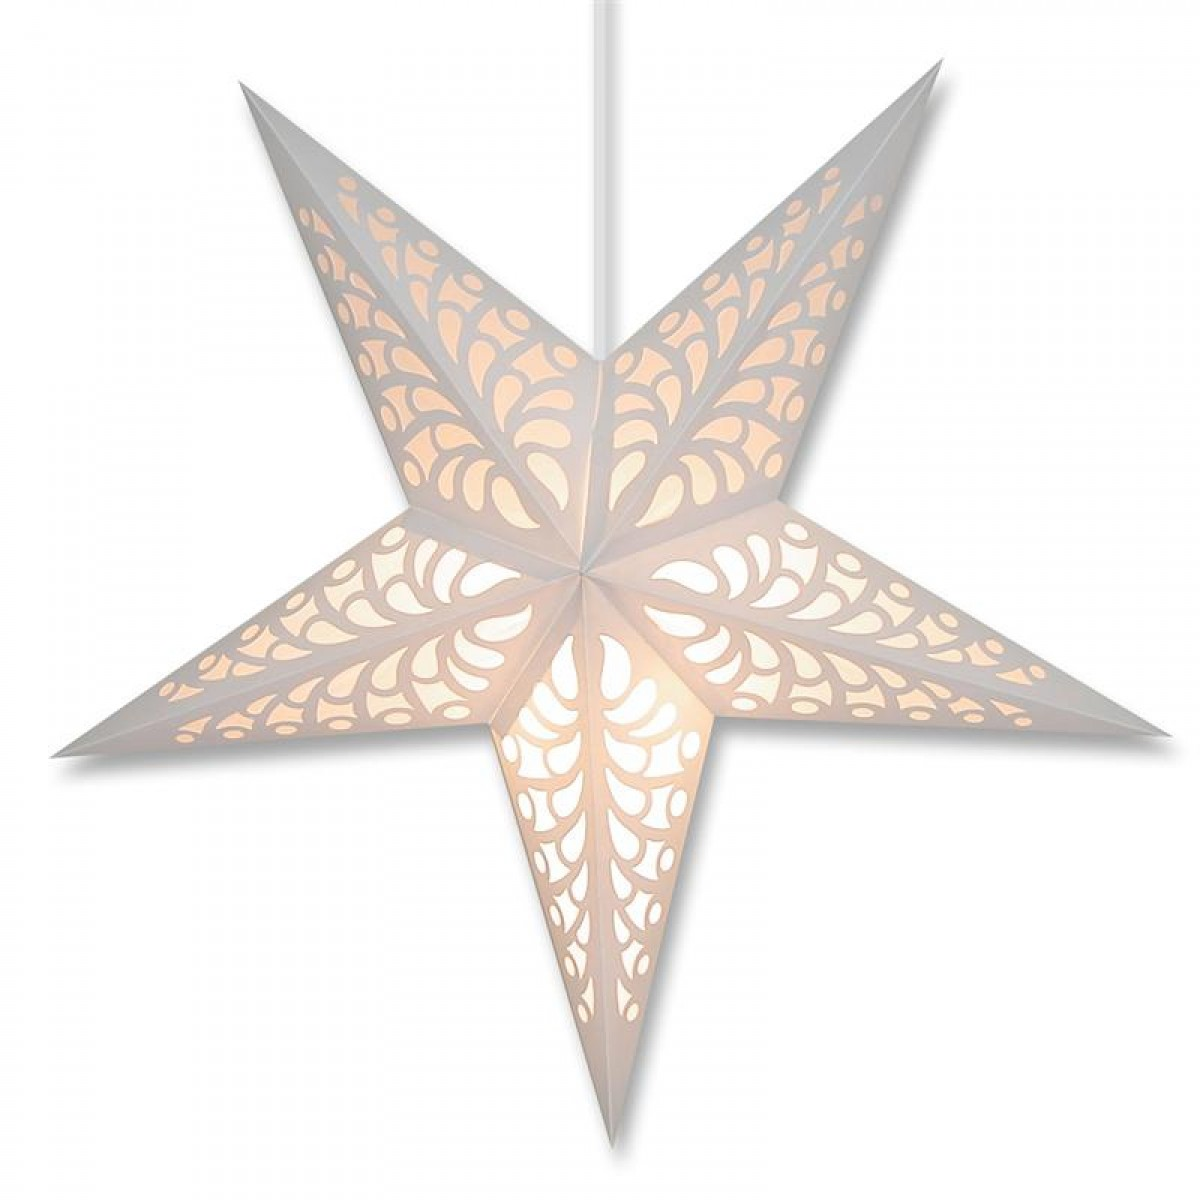 25 amazing star lamps for a fantastic night experience for Paper star lamp